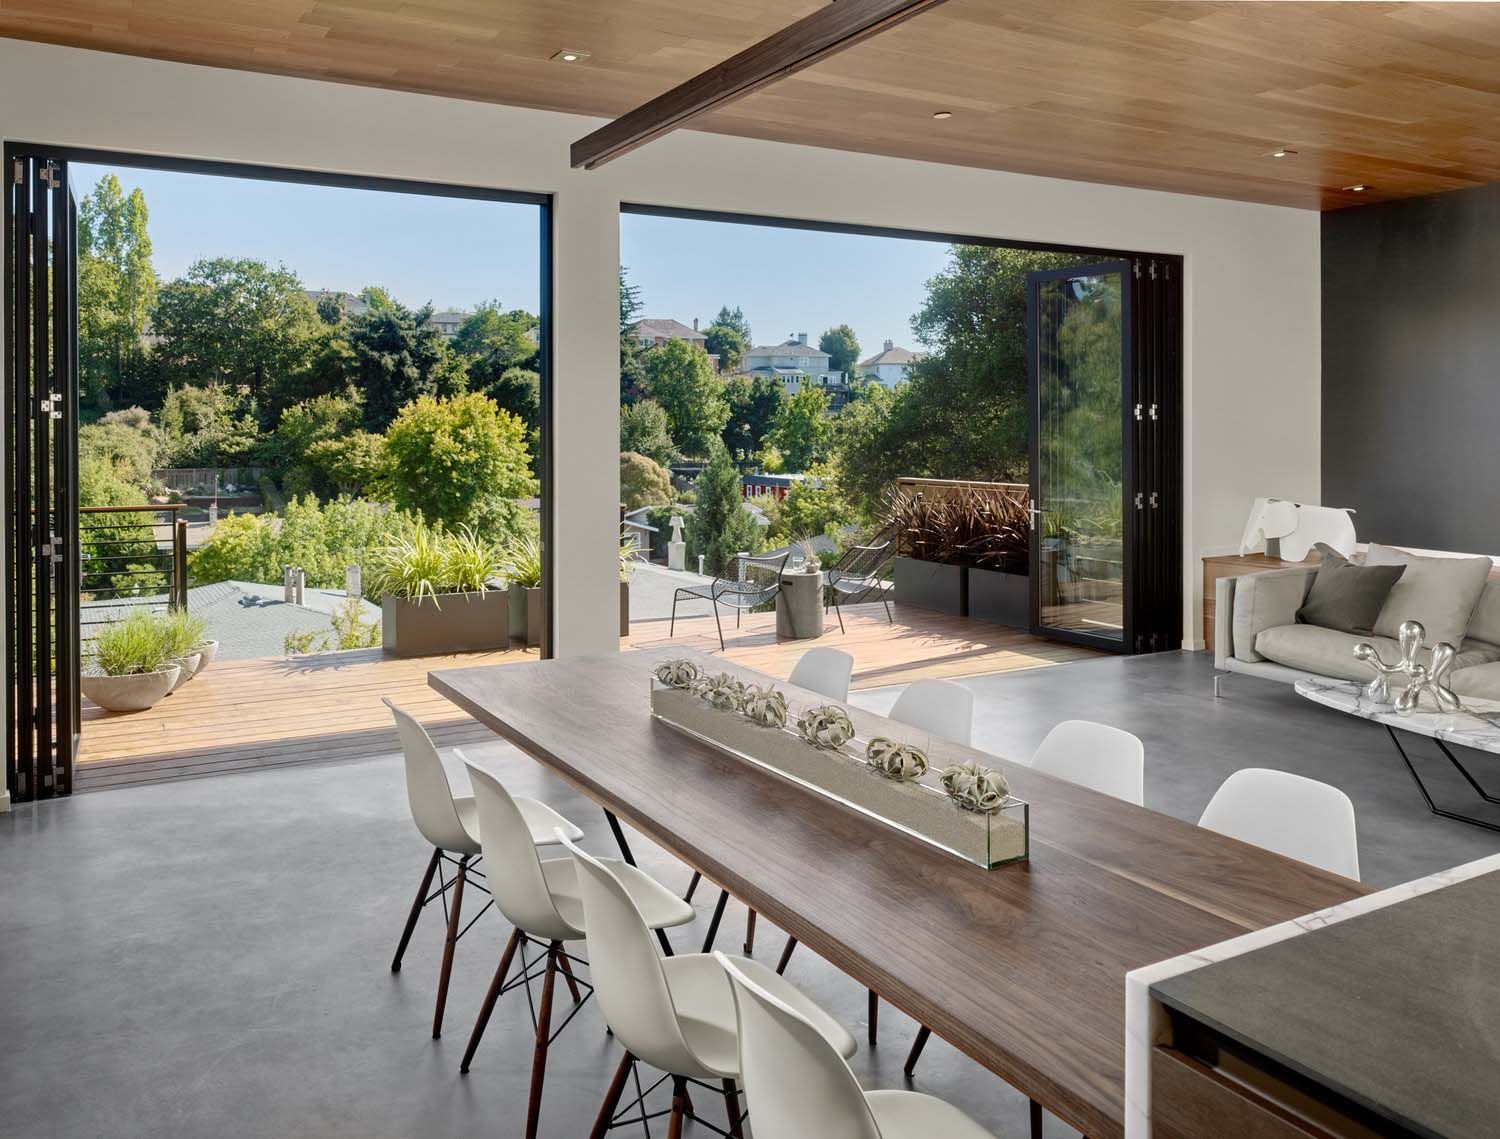 Midcentury Inspired Home With A Modern Twist On The West Coast Mid Century Modern Dining Room Architecture Design Dining Room Design Modern